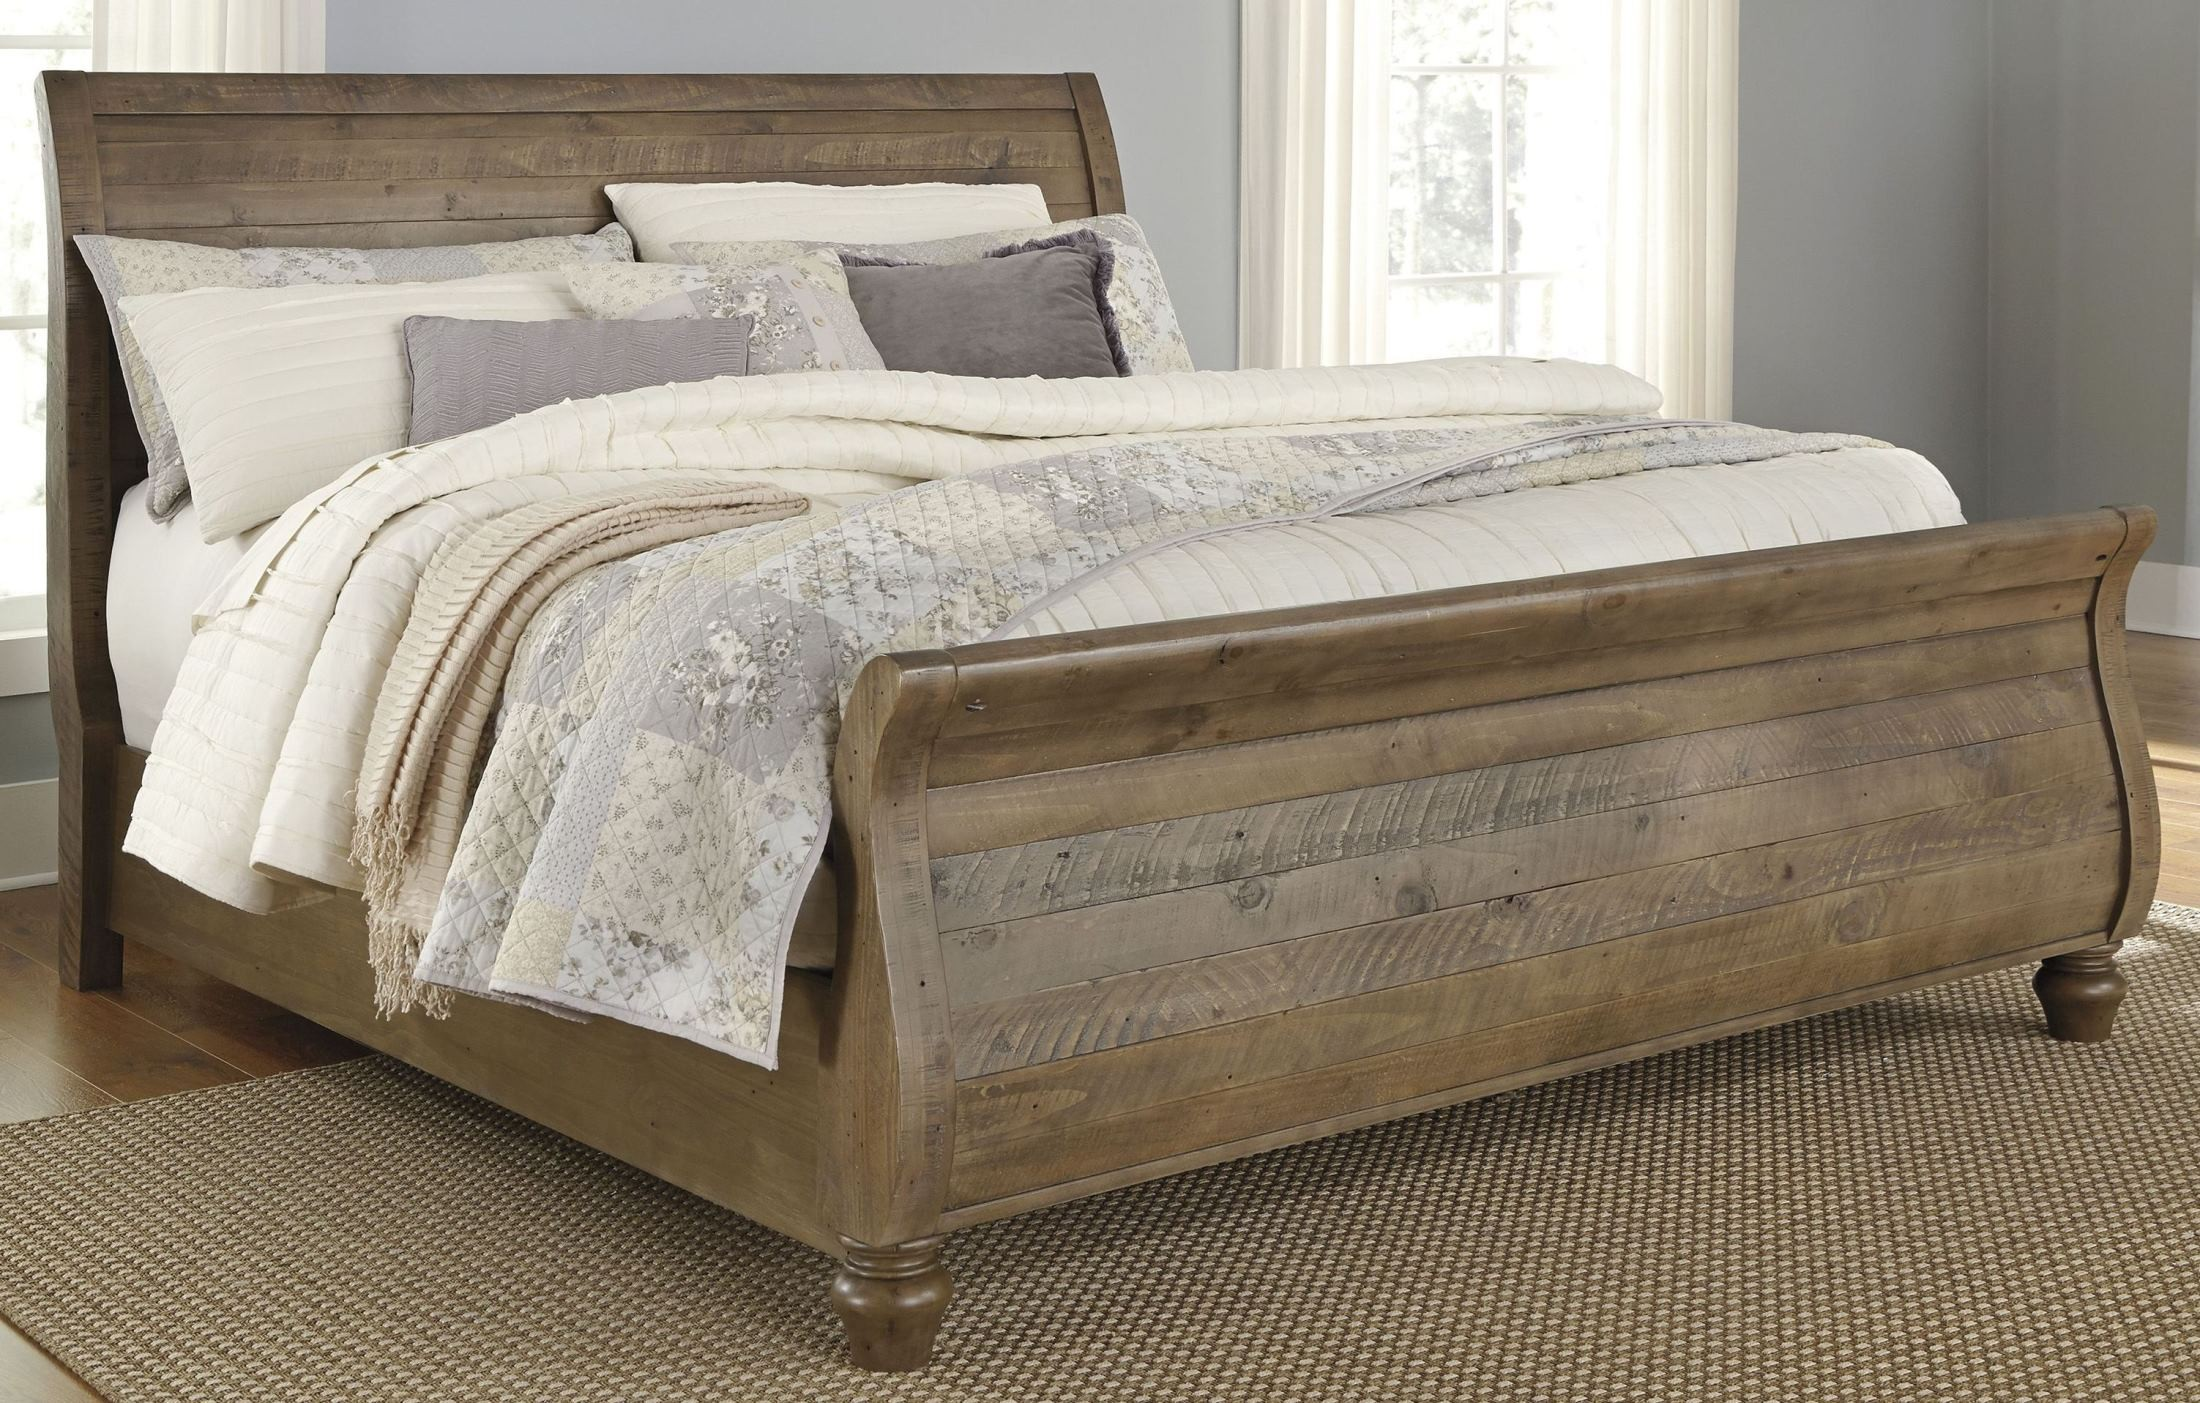 Trishley Light Brown King Sleigh Bed B659 78 76 99 Ashley